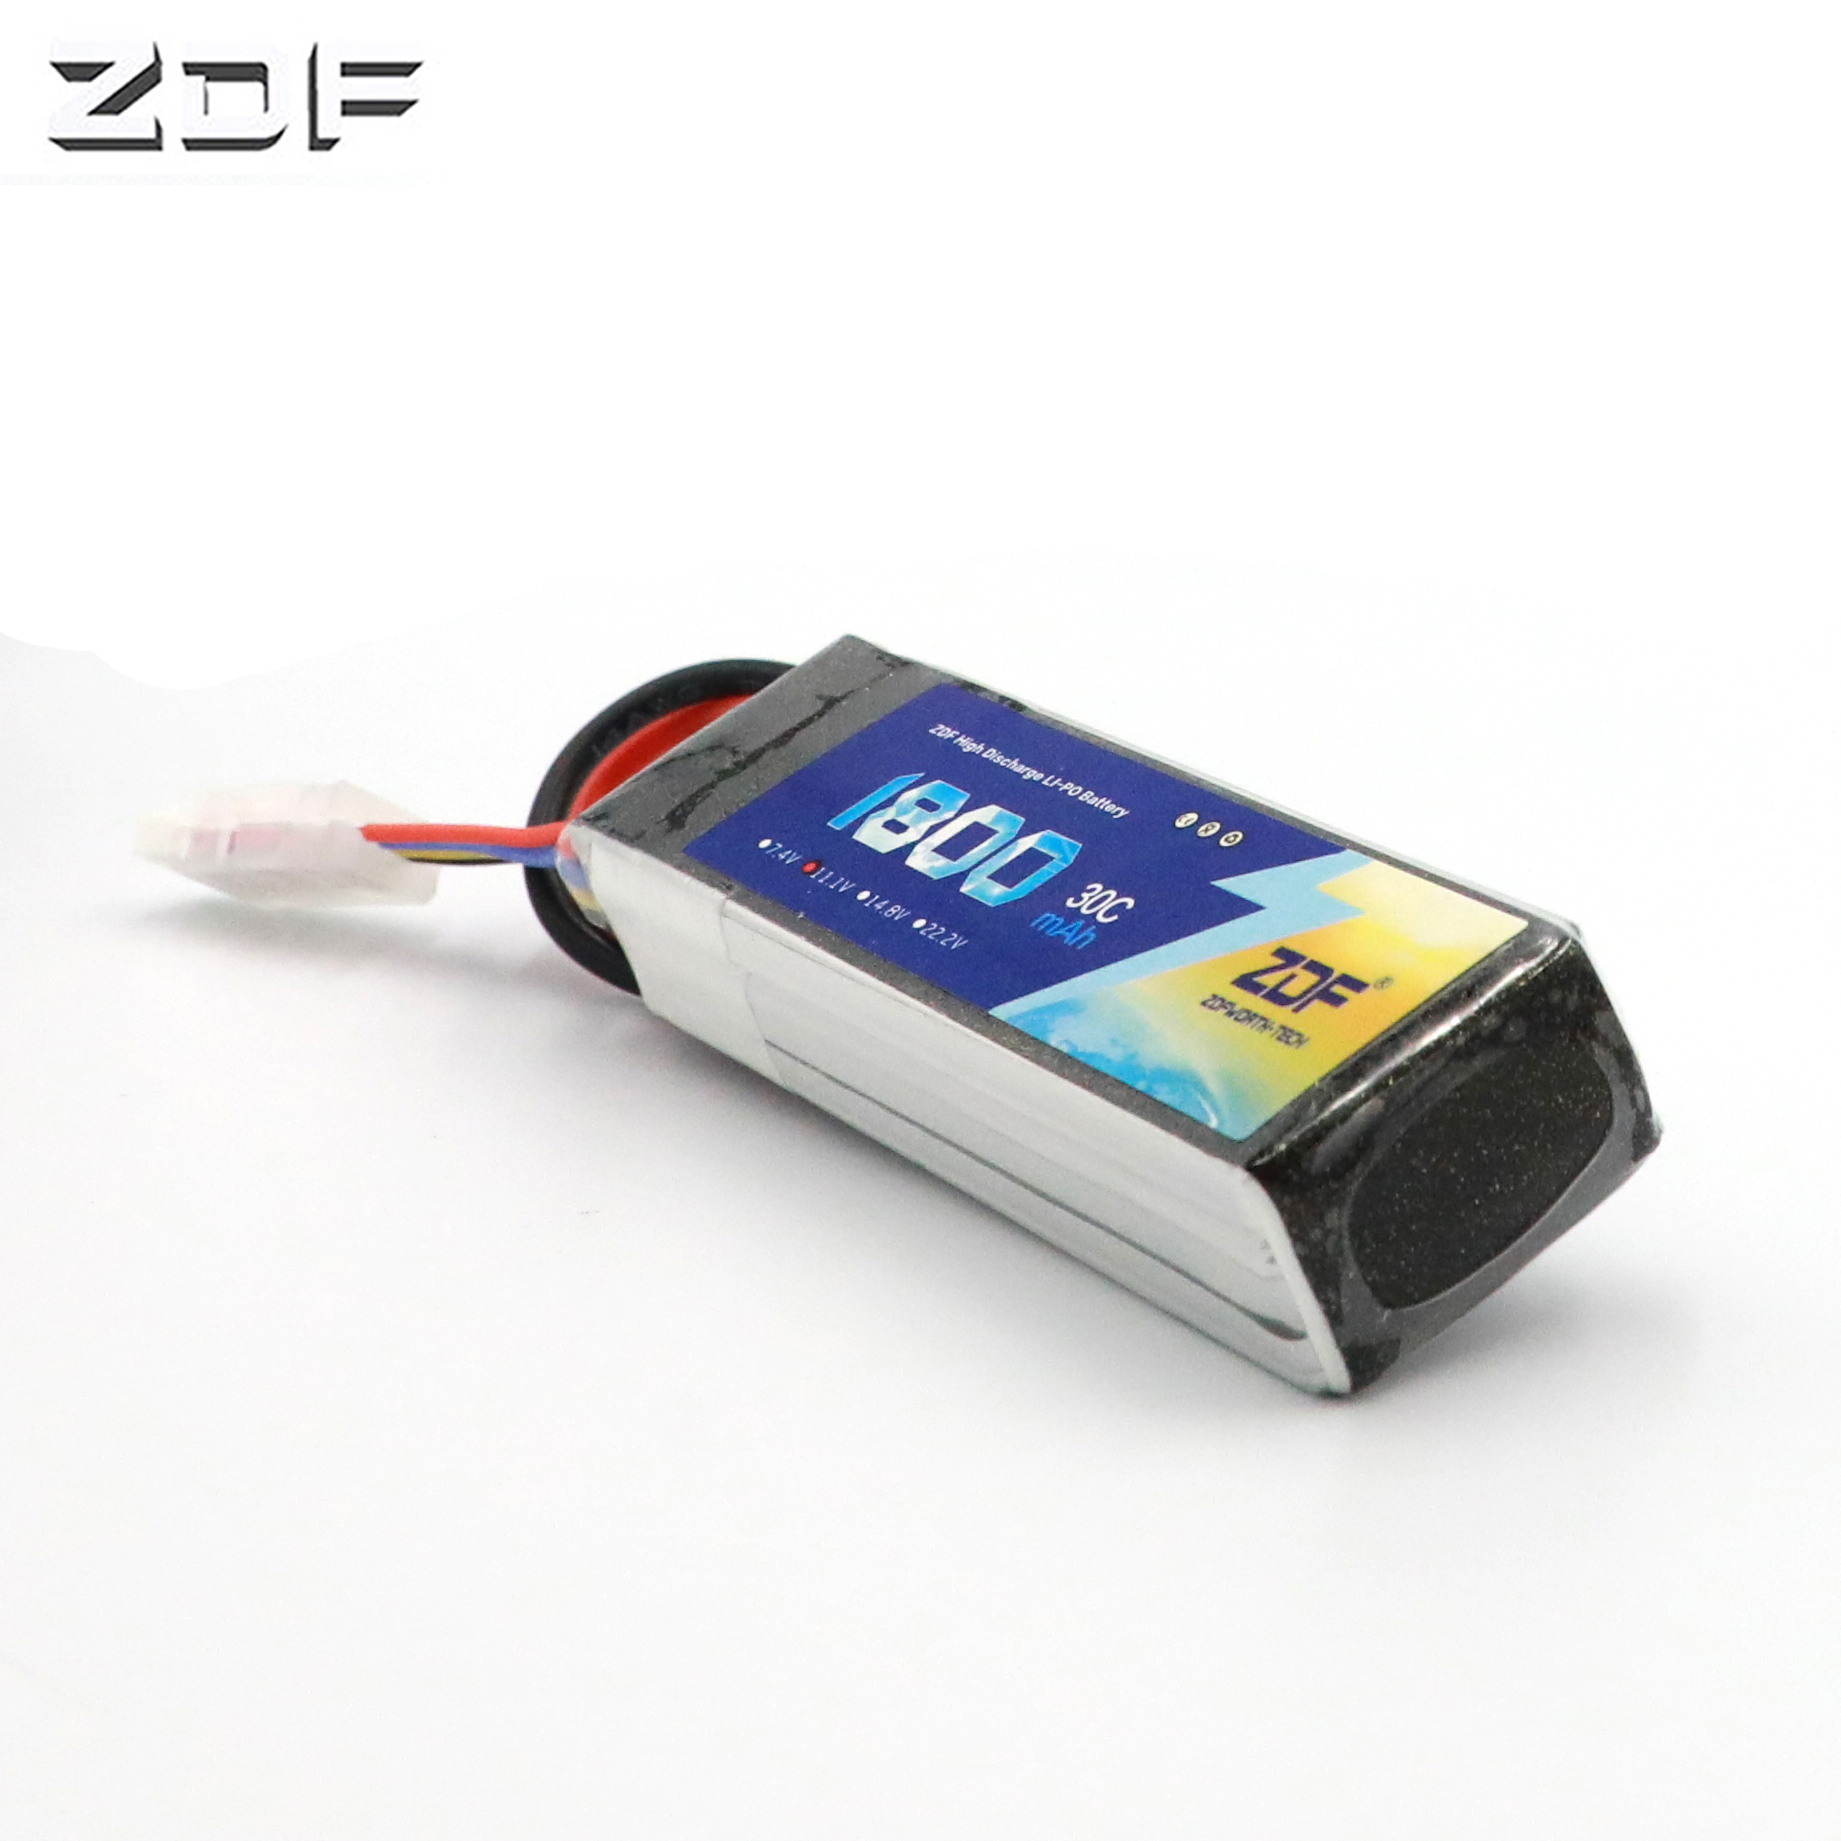 ZDF <font><b>Lipo</b></font> <font><b>3S</b></font> 11.1V <font><b>1800mAh</b></font> 30C For RC Quadcopter Helicopter Car Drone Airplane Boat Truck Remote Control Toys <font><b>Lipo</b></font> Battery image